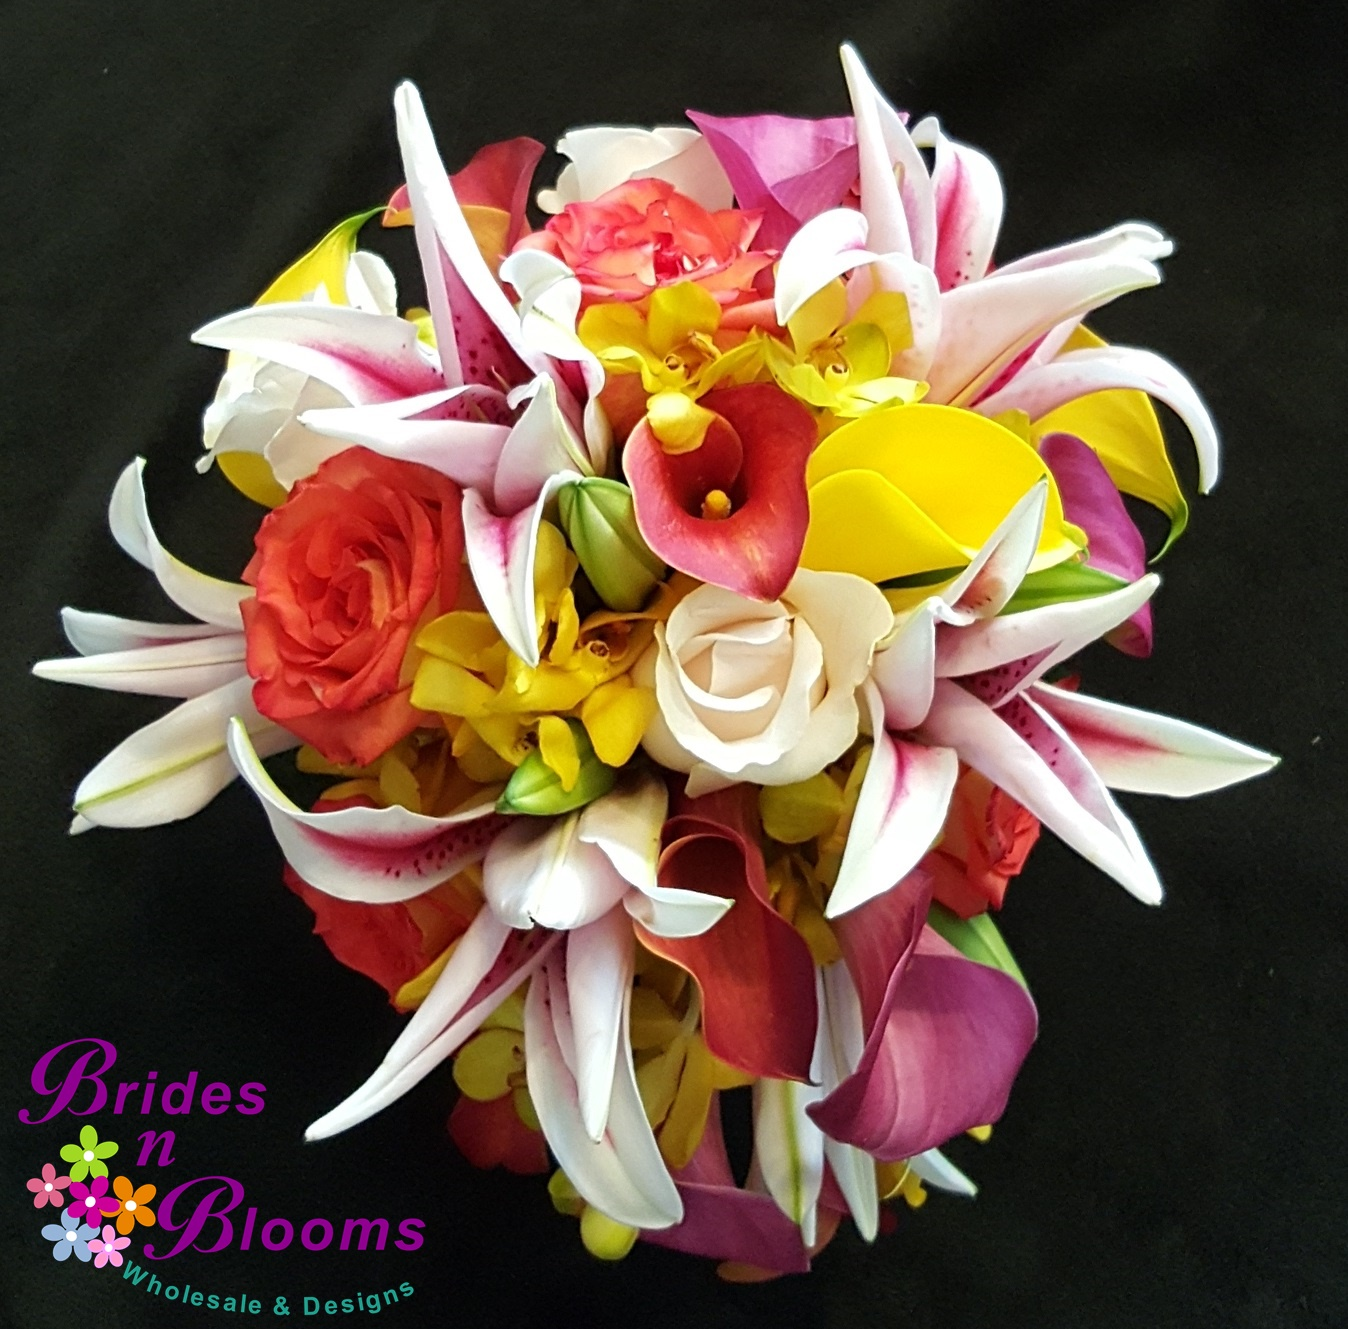 Teardrop Bridal Bouquet with Stargazer Lily, Mini Callas, Orchids & Roses